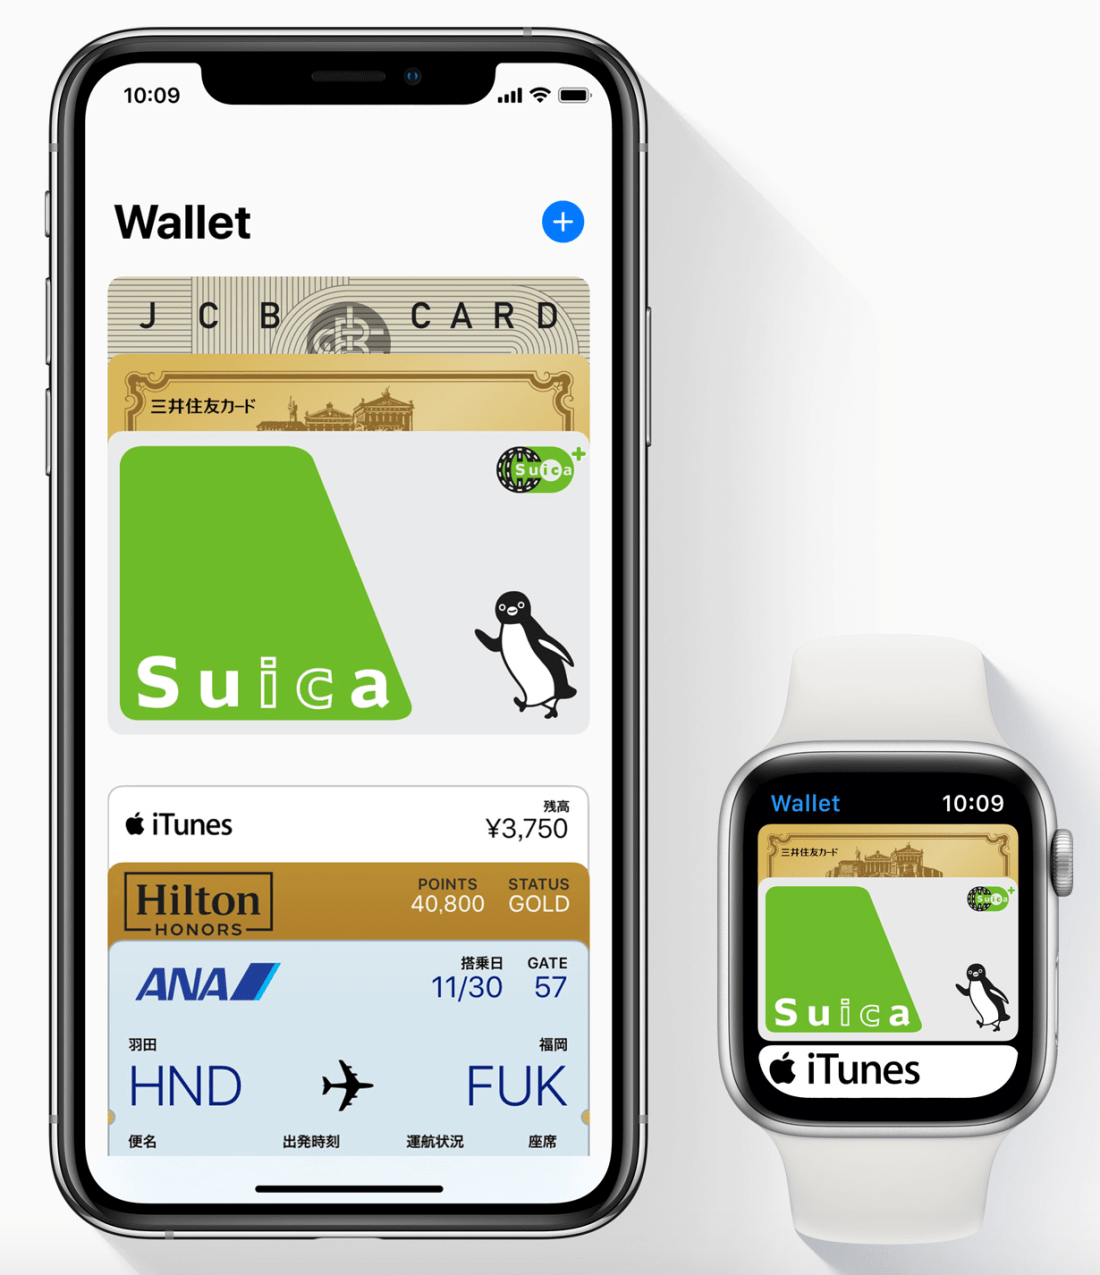 Apple Pay Suica on iPhone XS and Apple Watch Series 4 are a little different